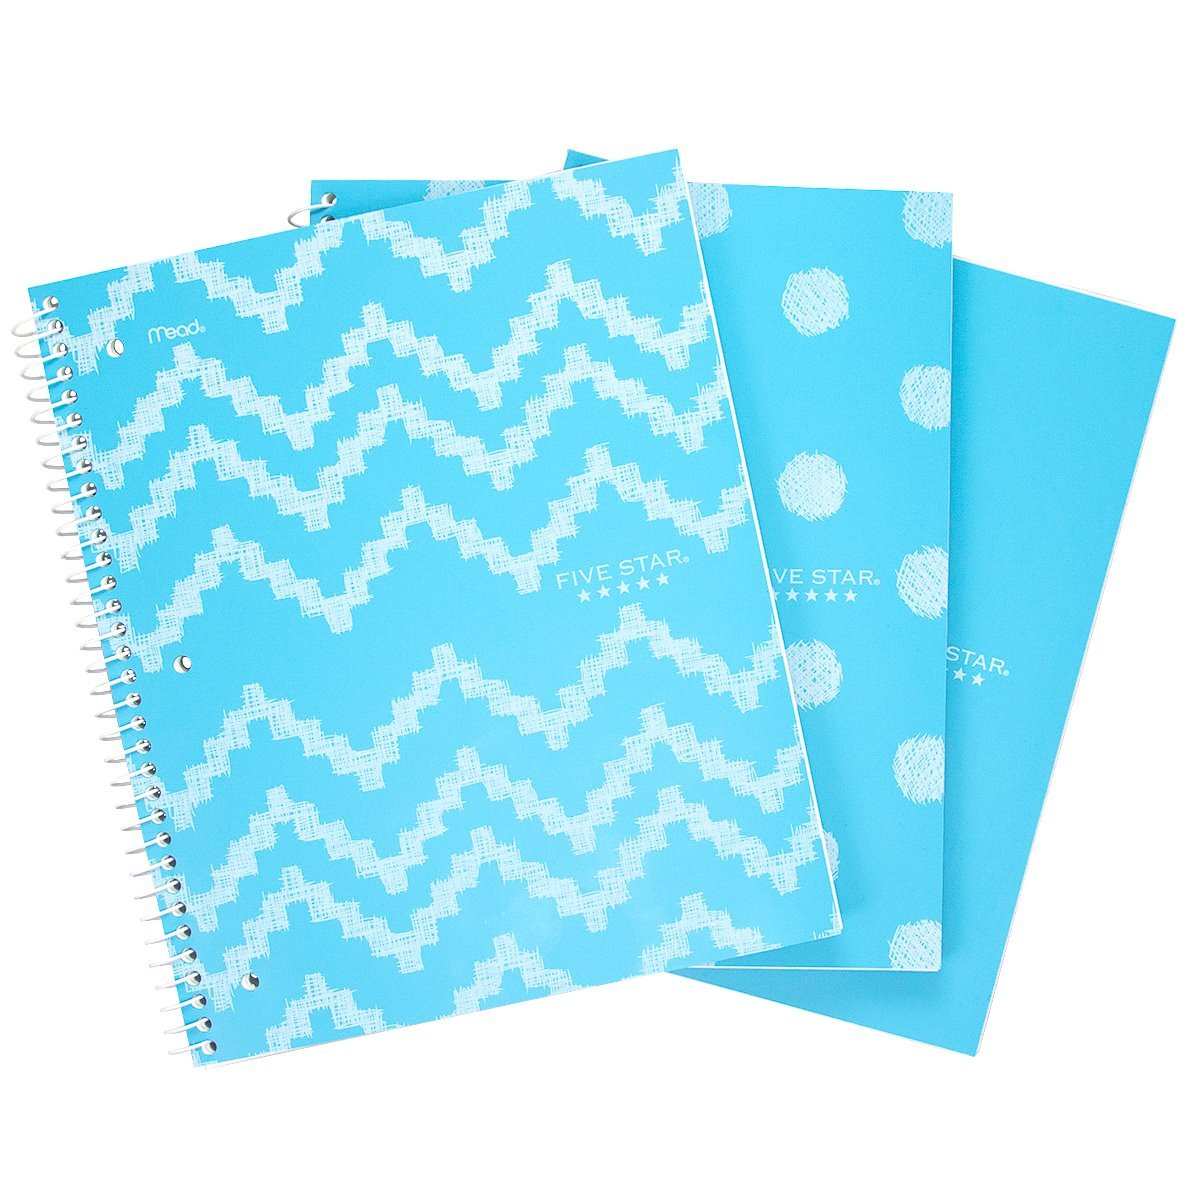 3pk mead five star 1 subject spiral notebooks 100 sheets wide ruled pockets blue journal diary school office